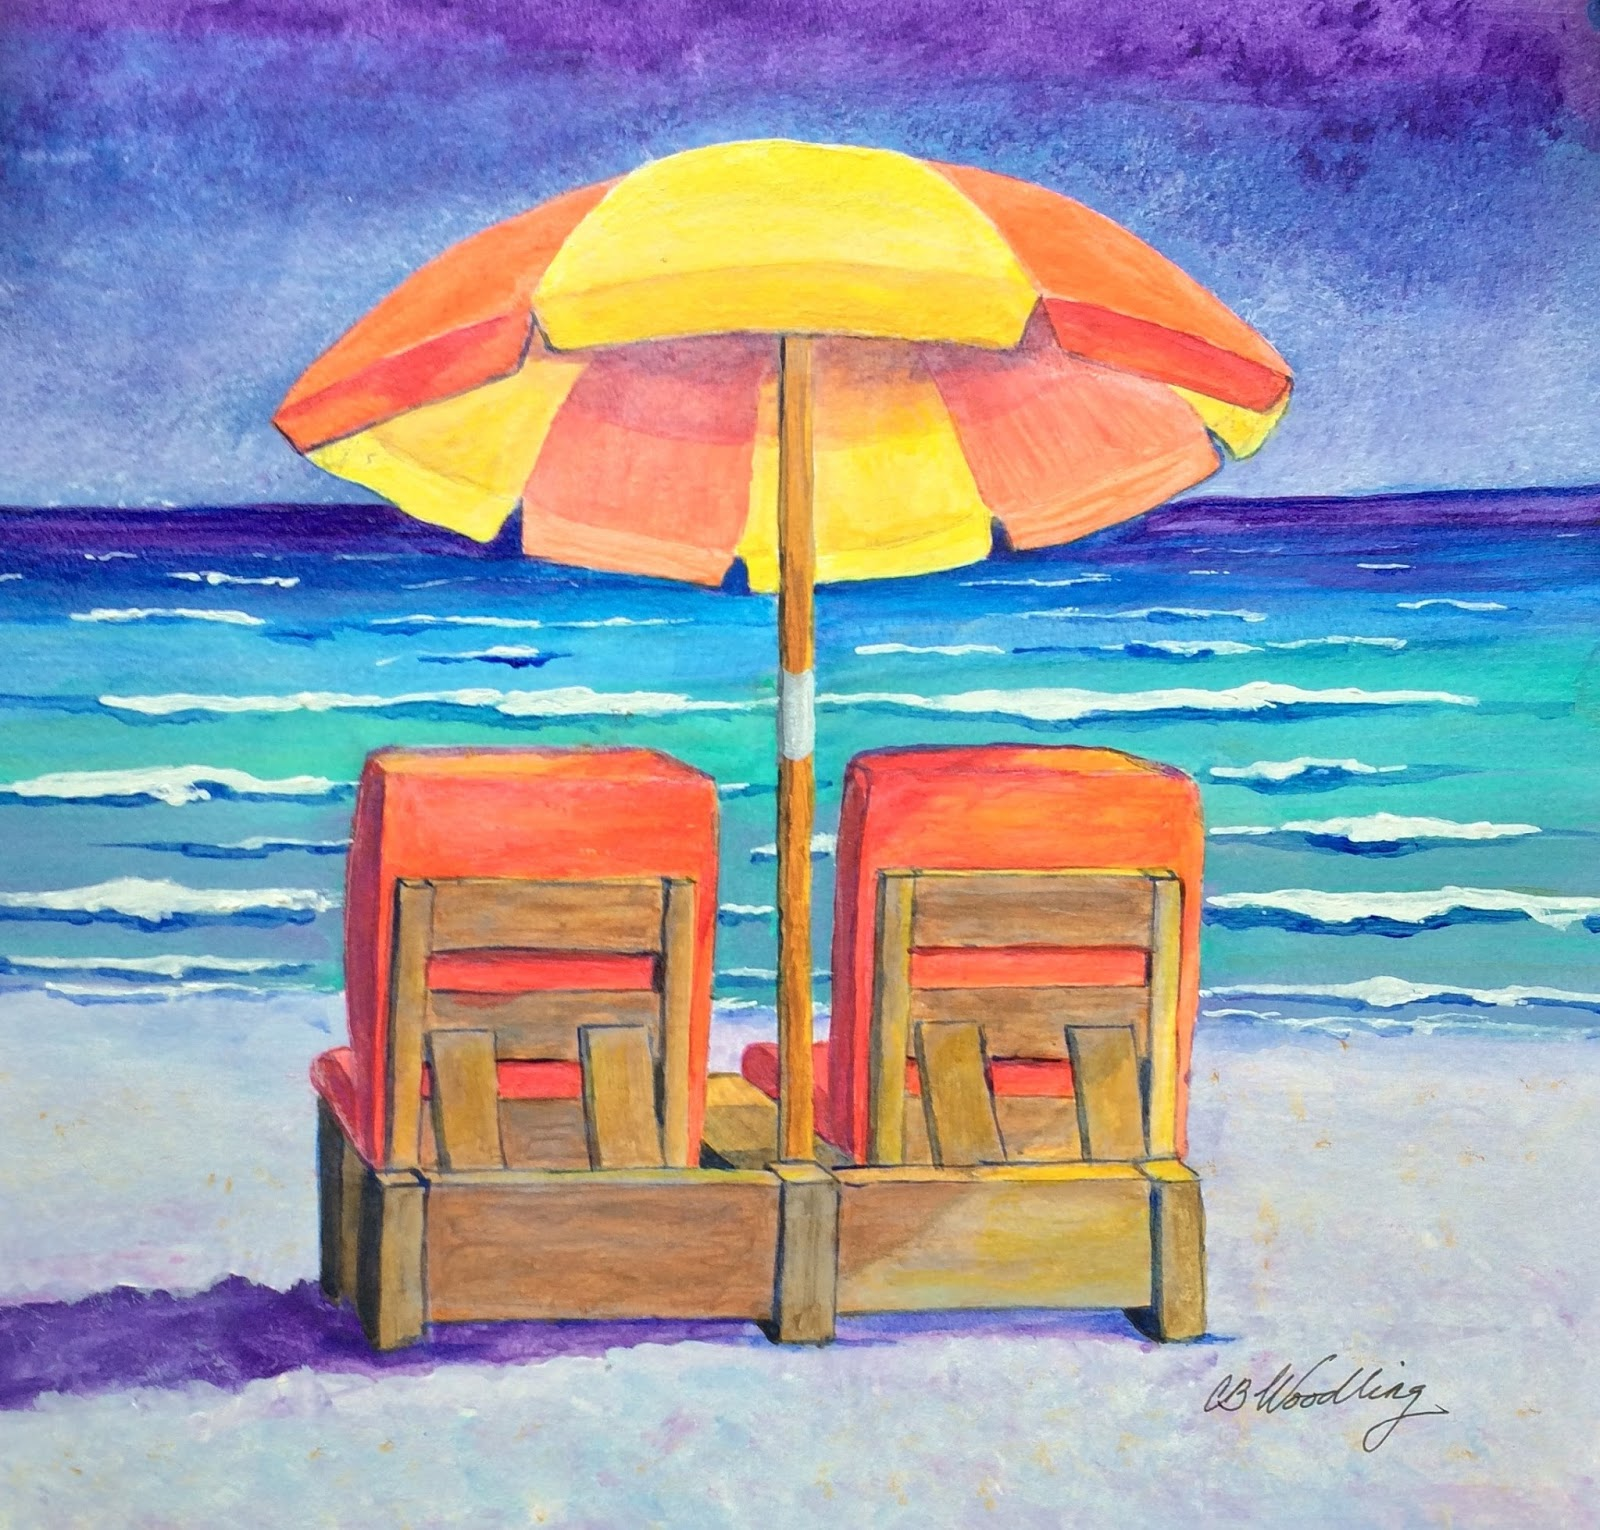 Beach chairs on the beach painting - Beach Chairs In Orange By Cb Woodling